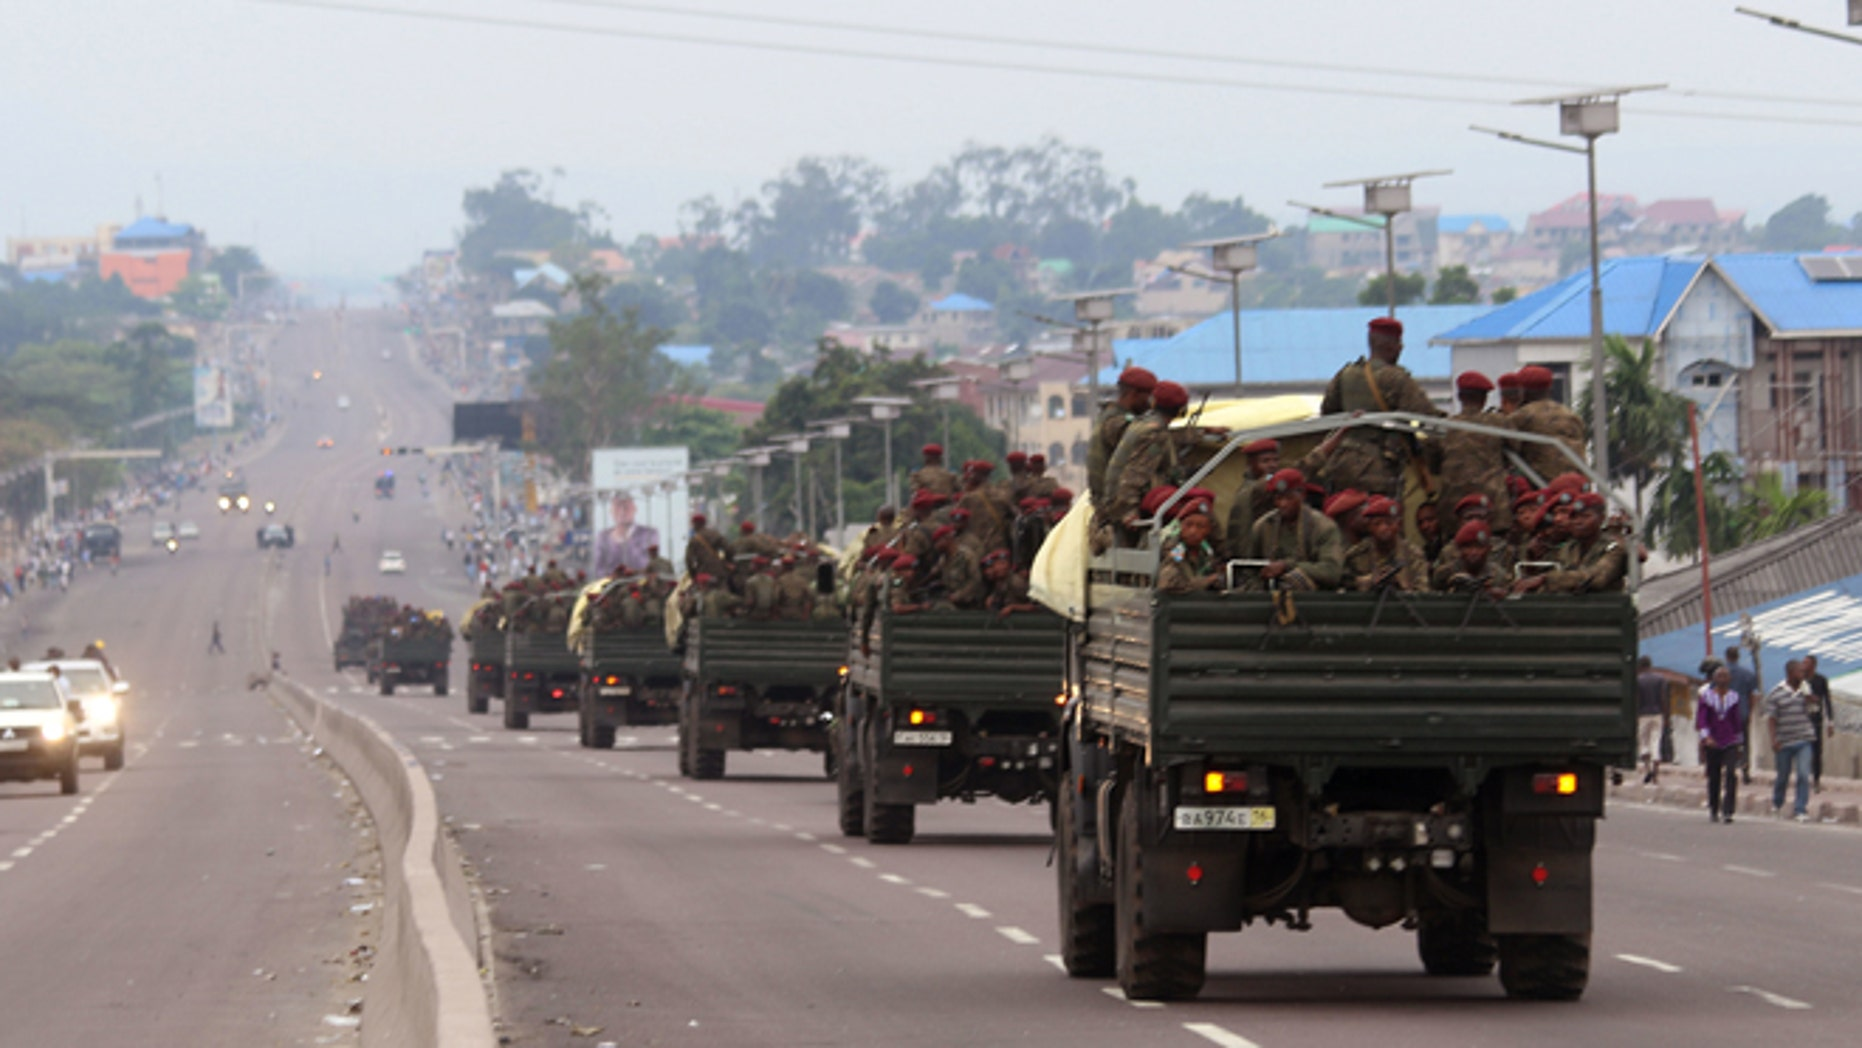 Congo military trucks carrying Congolese troops drive in a main street after violence erupted due to the delay of the presidential elections in Kinshasa, Democratic Republic of Congo, Tuesday, Sept. 20, 2016.